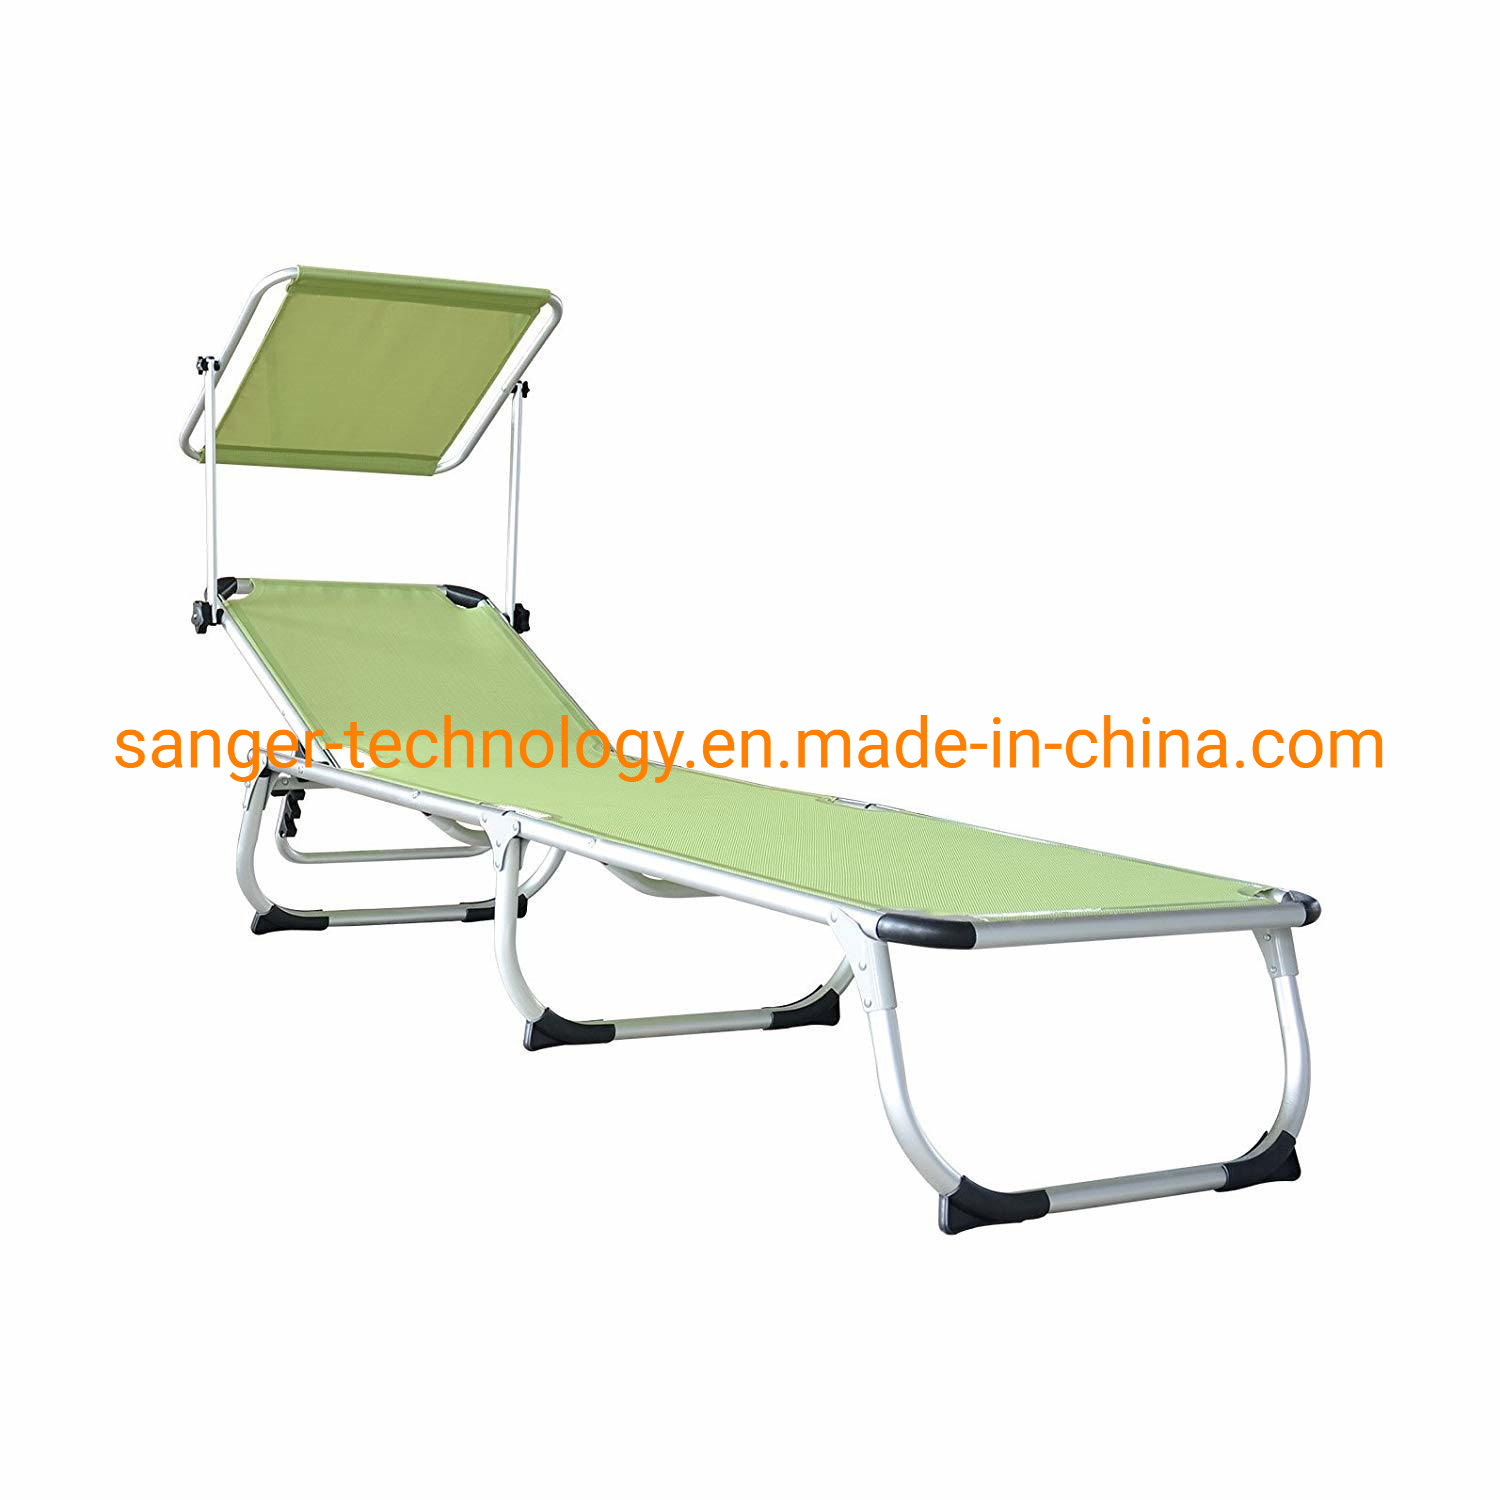 Patio Furniture For Over 300 Lbs.Hot Item Patio Chaise Lounge Chair With Sun Shade Folding Zero Gravity Free Recliner Adjustable Beach Relax Chair For Camping Support 300 Lbs